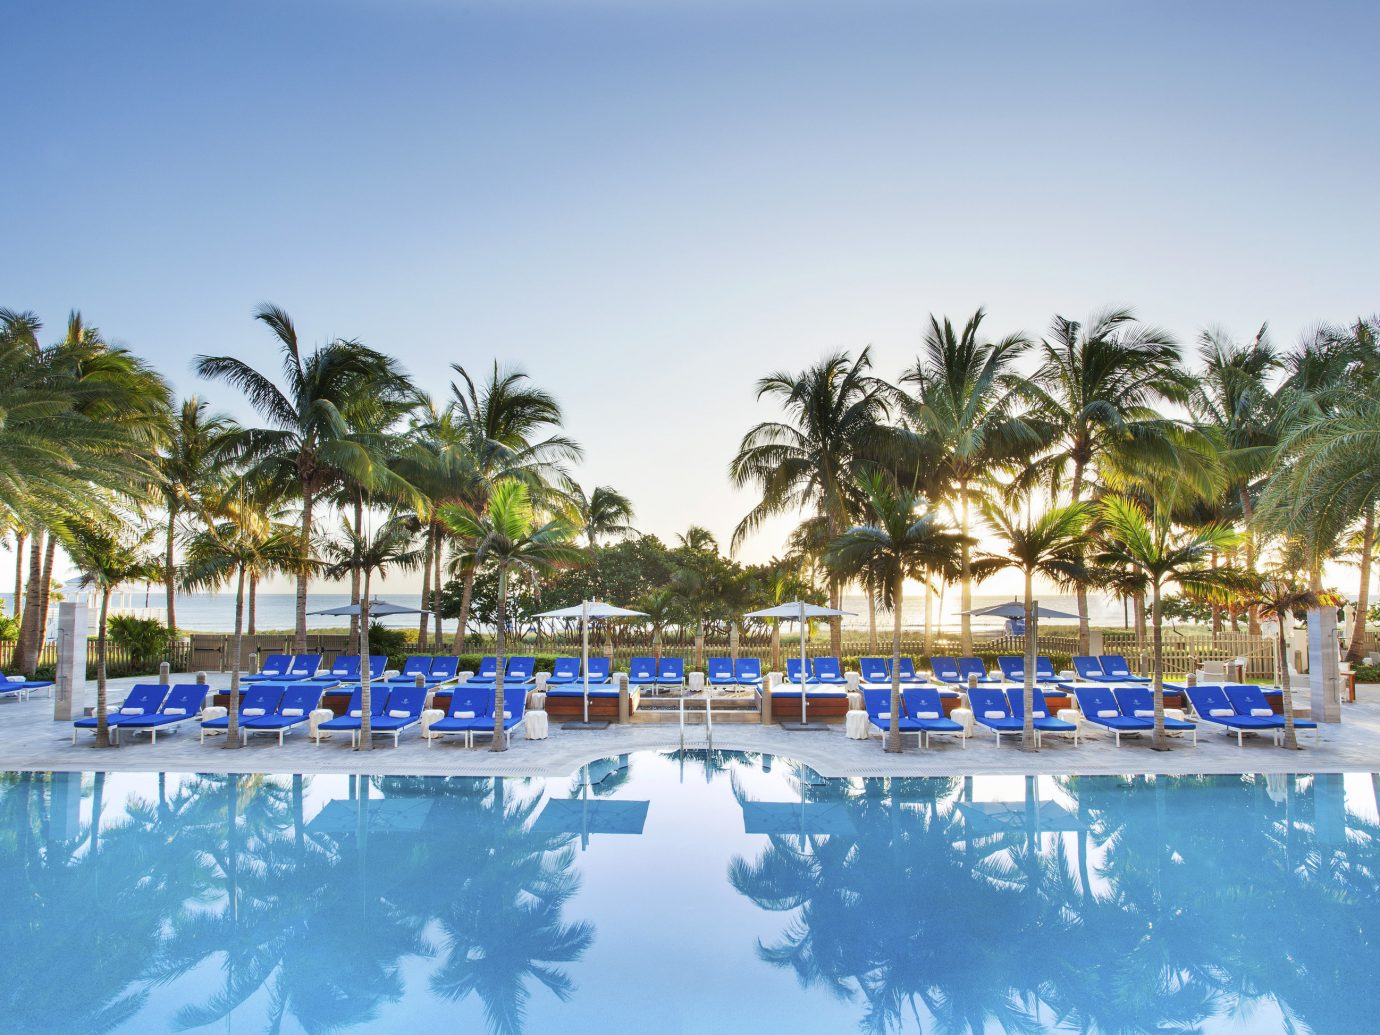 Pool at St. Regis Bal Harbour Miami Luxury Hotel